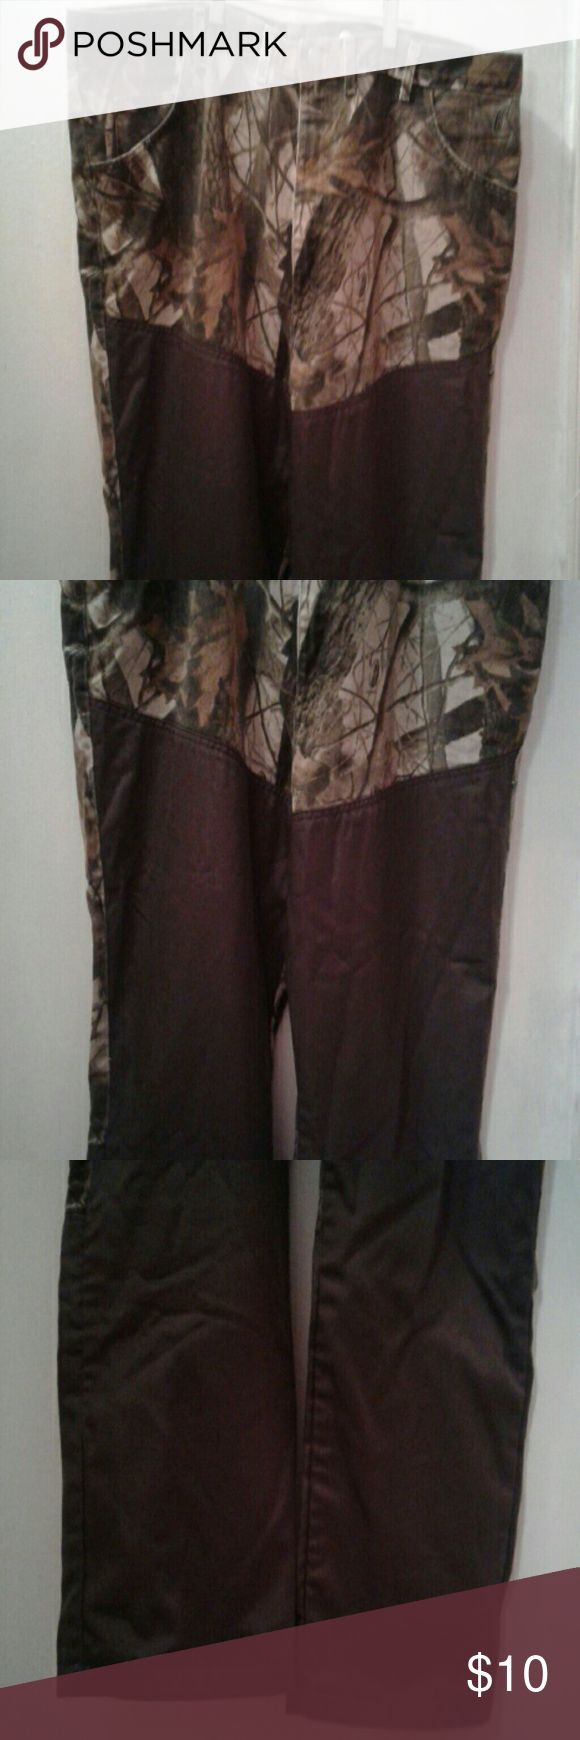 Camouflage Hunting Real Tree Pants Mens 46 X 30 Wrangler Pro Gear 100 % cotton hunting pants.   Camouflage and brown  with Real Tree in small print in the design.   Great condition with one very small skinned spot on backside.  Measures 23.5 inches across the waist in front,  30 inch inseam. Wrangler Jeans Relaxed